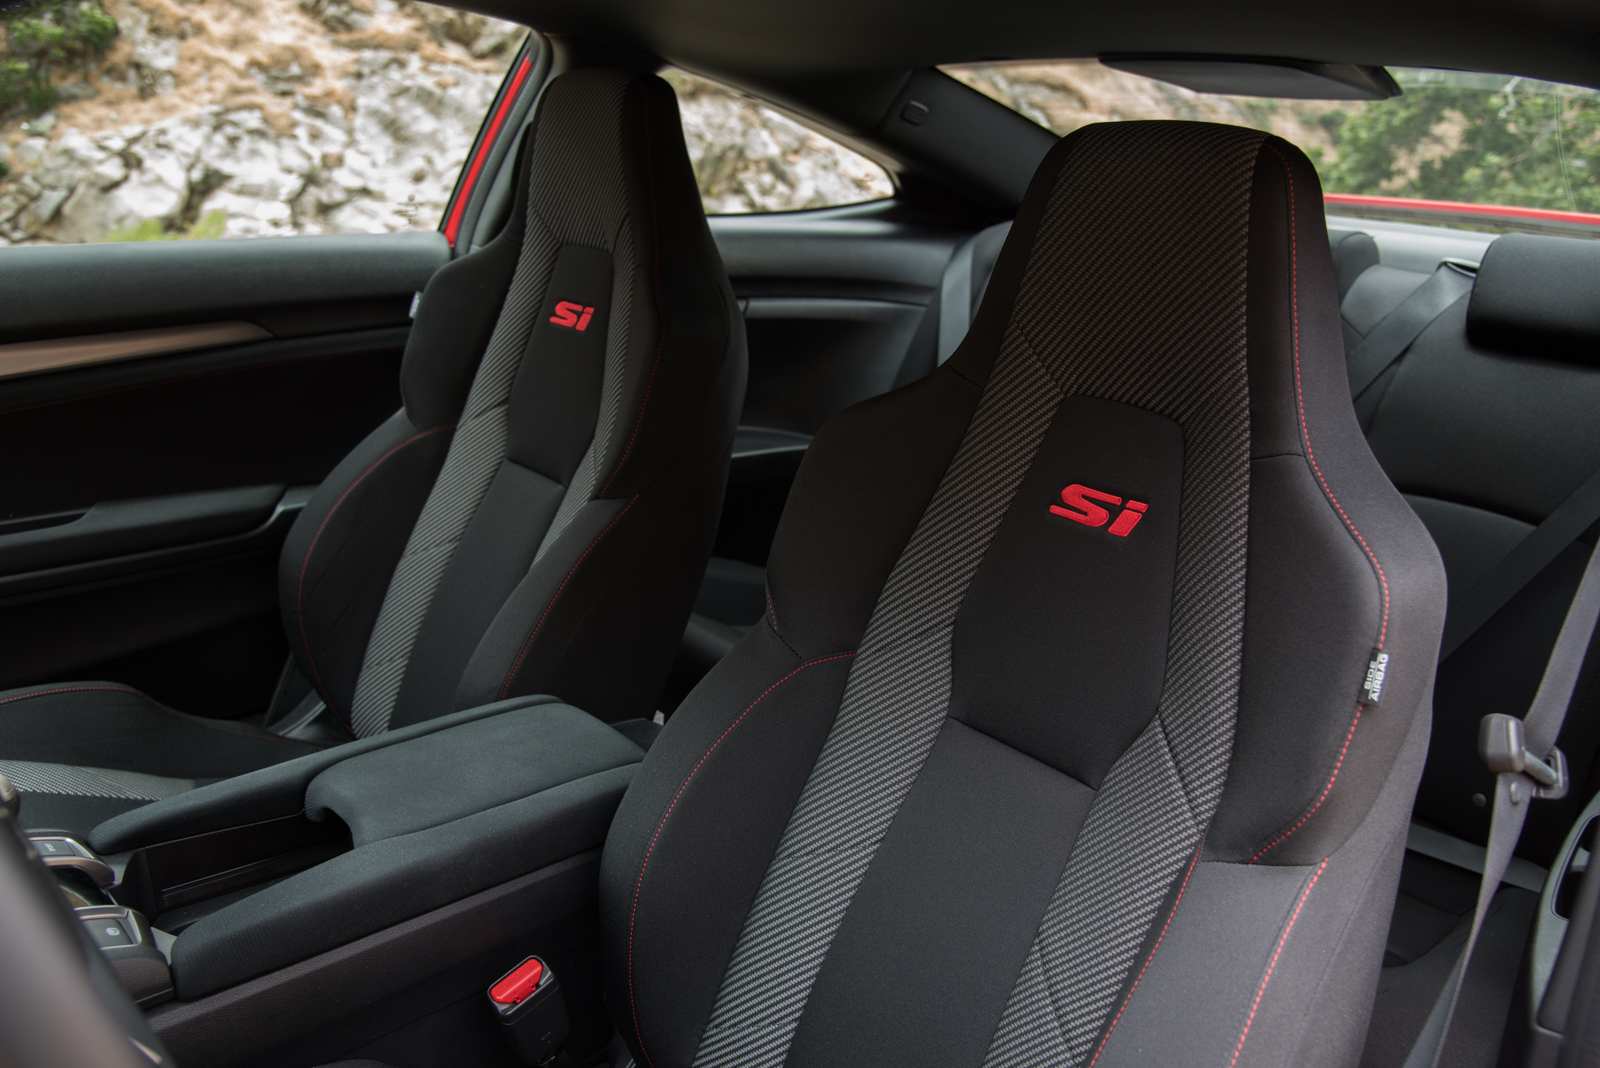 2017 Honda Civic Si Seat 02